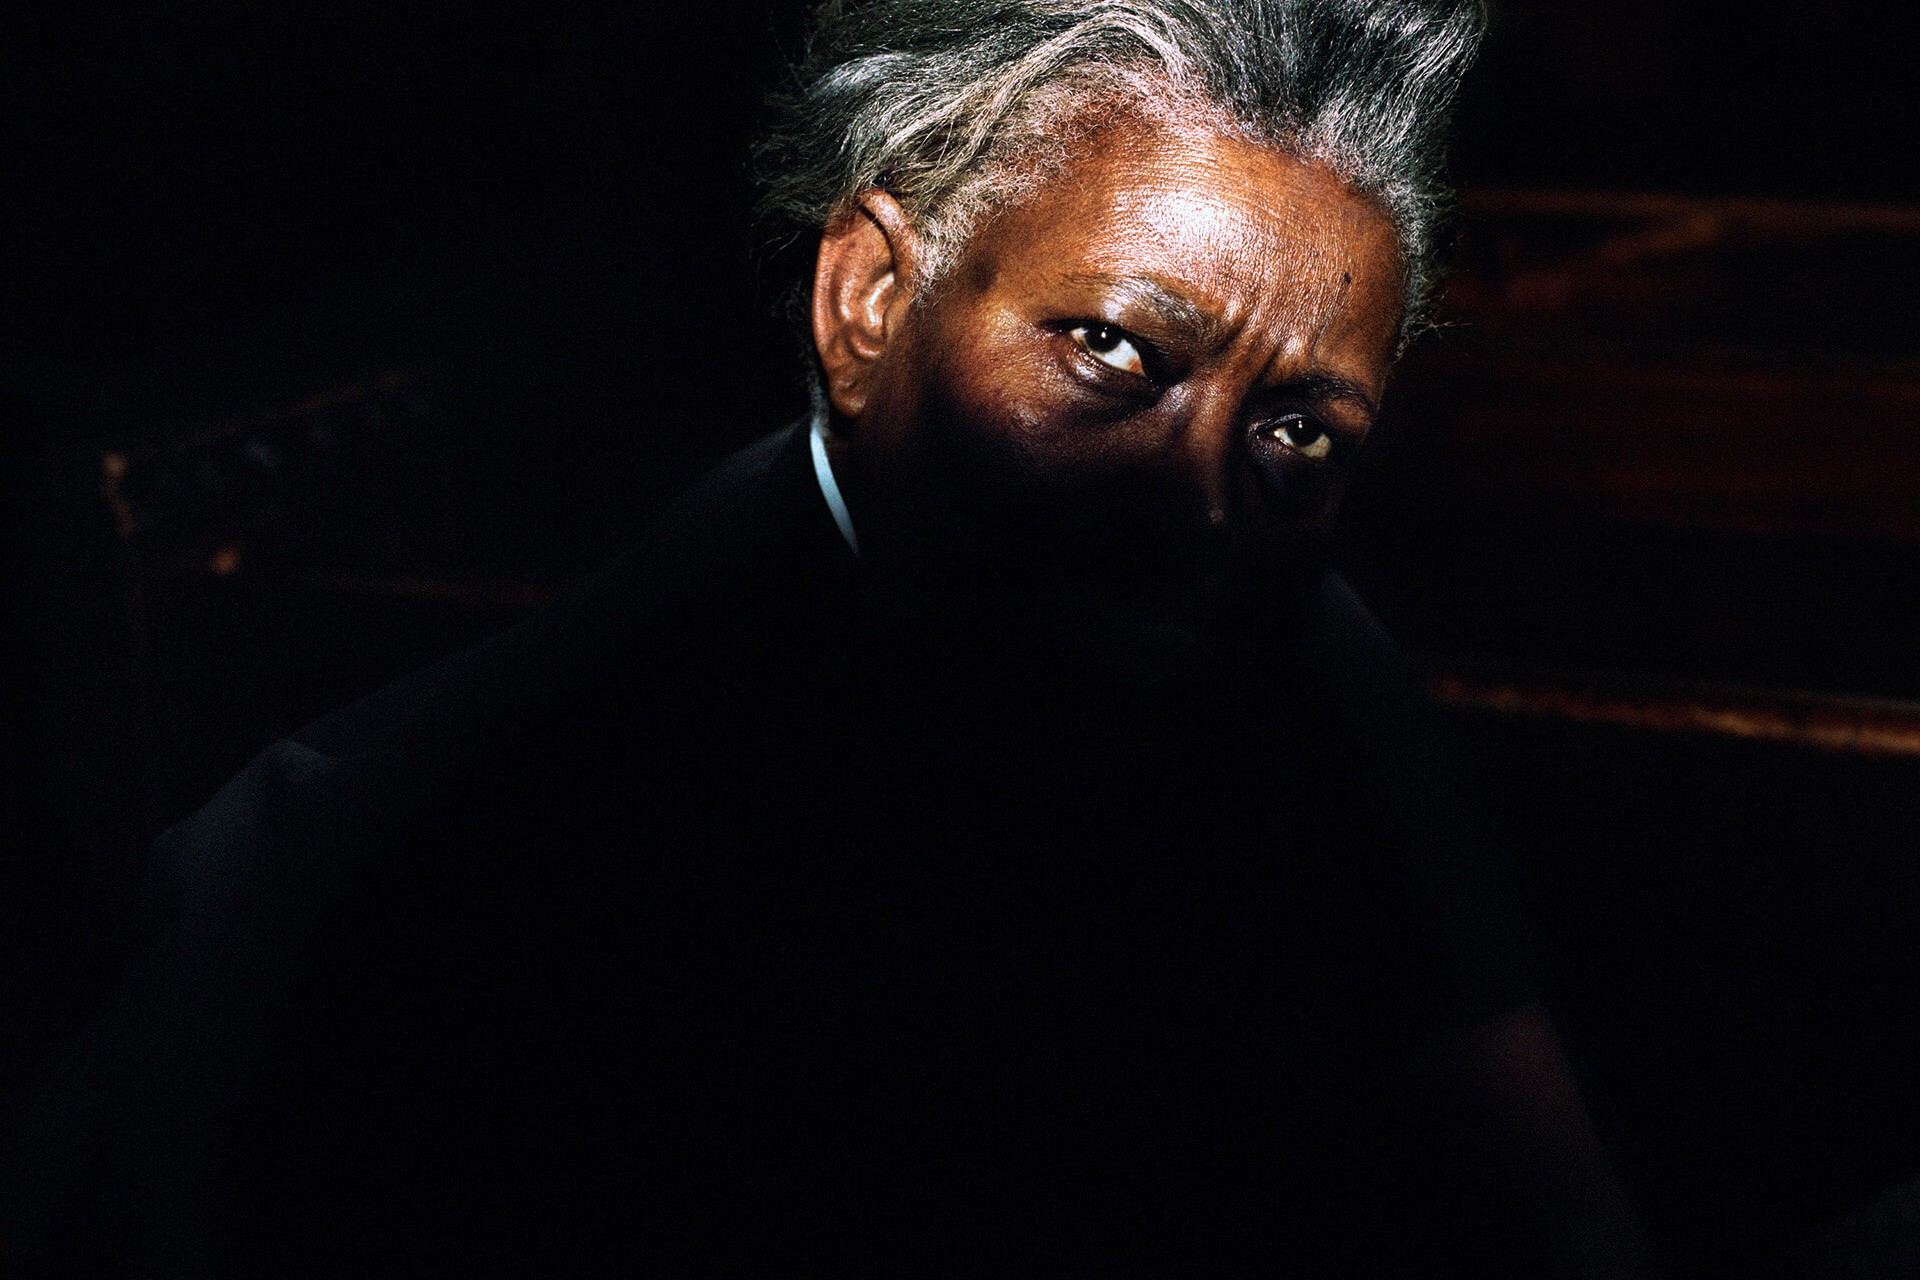 Piotr Karpinski the south west collective of photography black man with light on half of his face